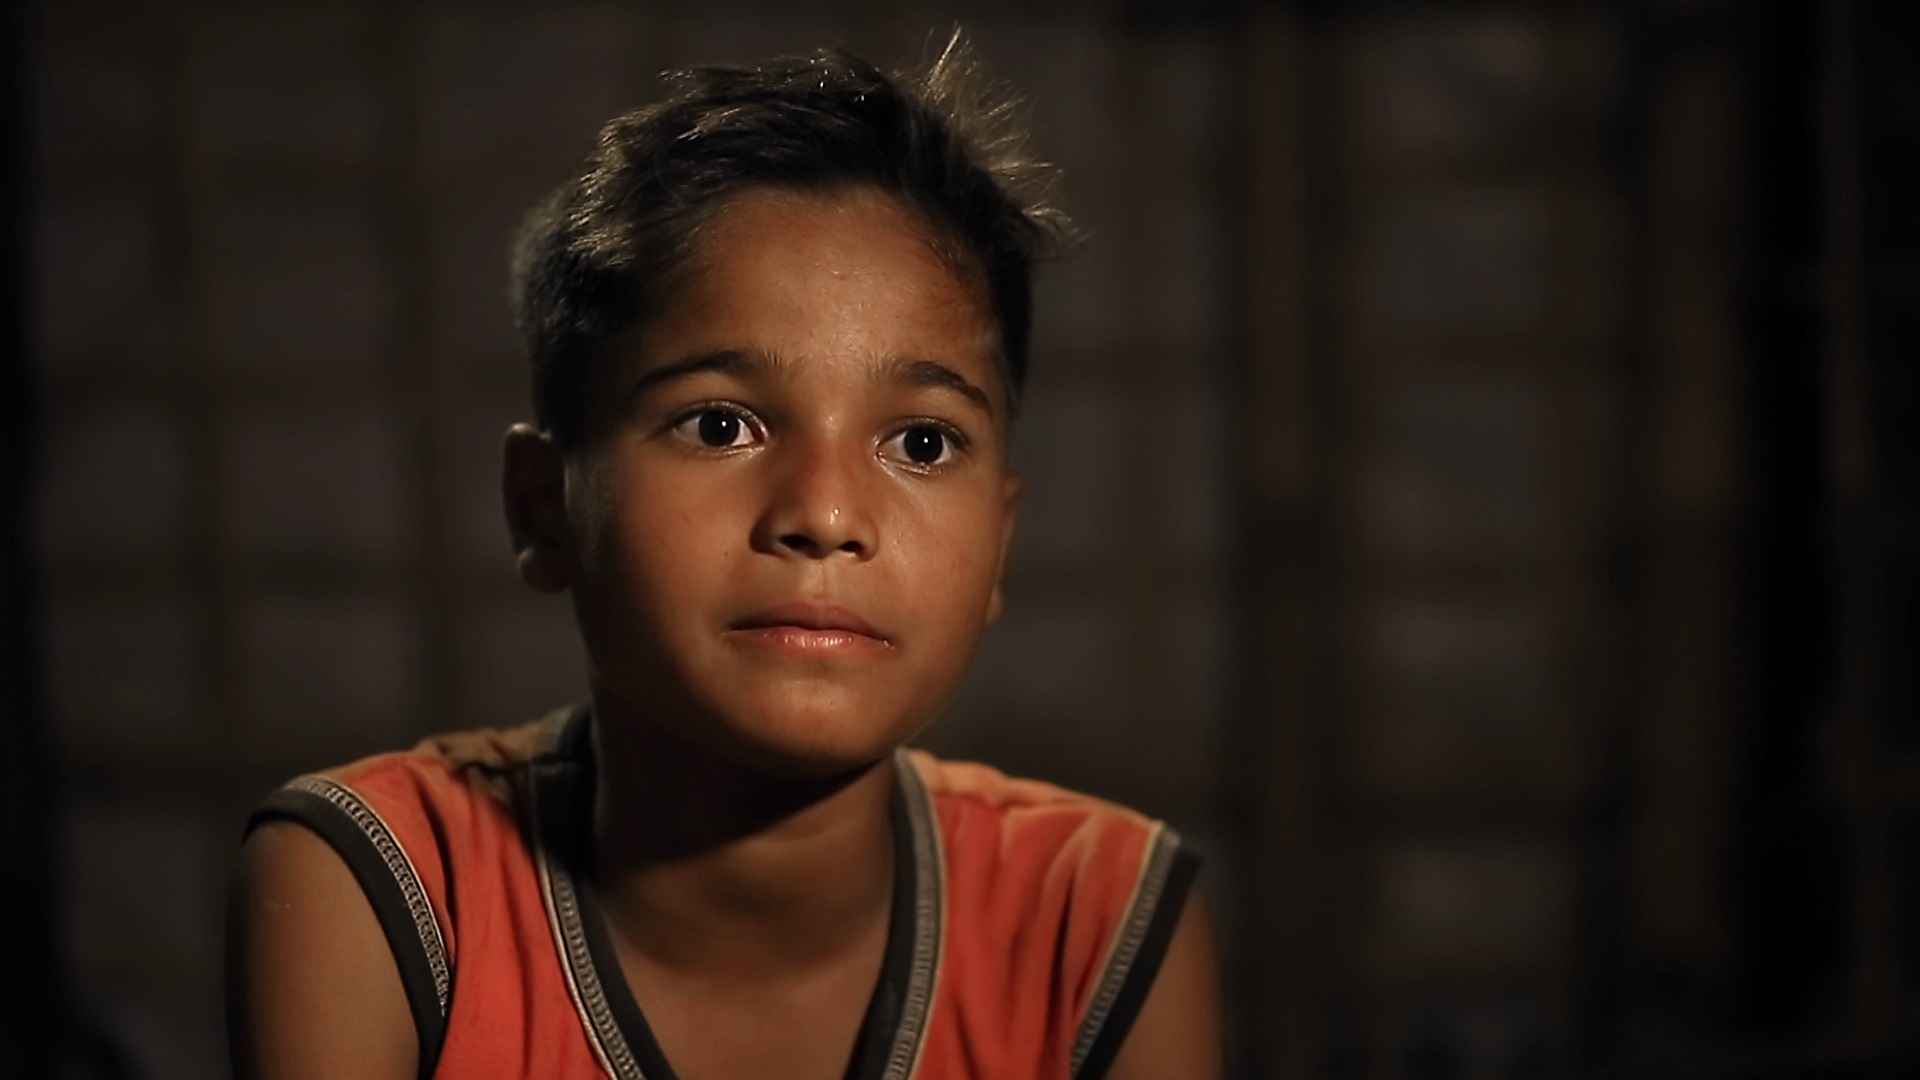 A boy who can sing: The life of a Rohingya child refugee